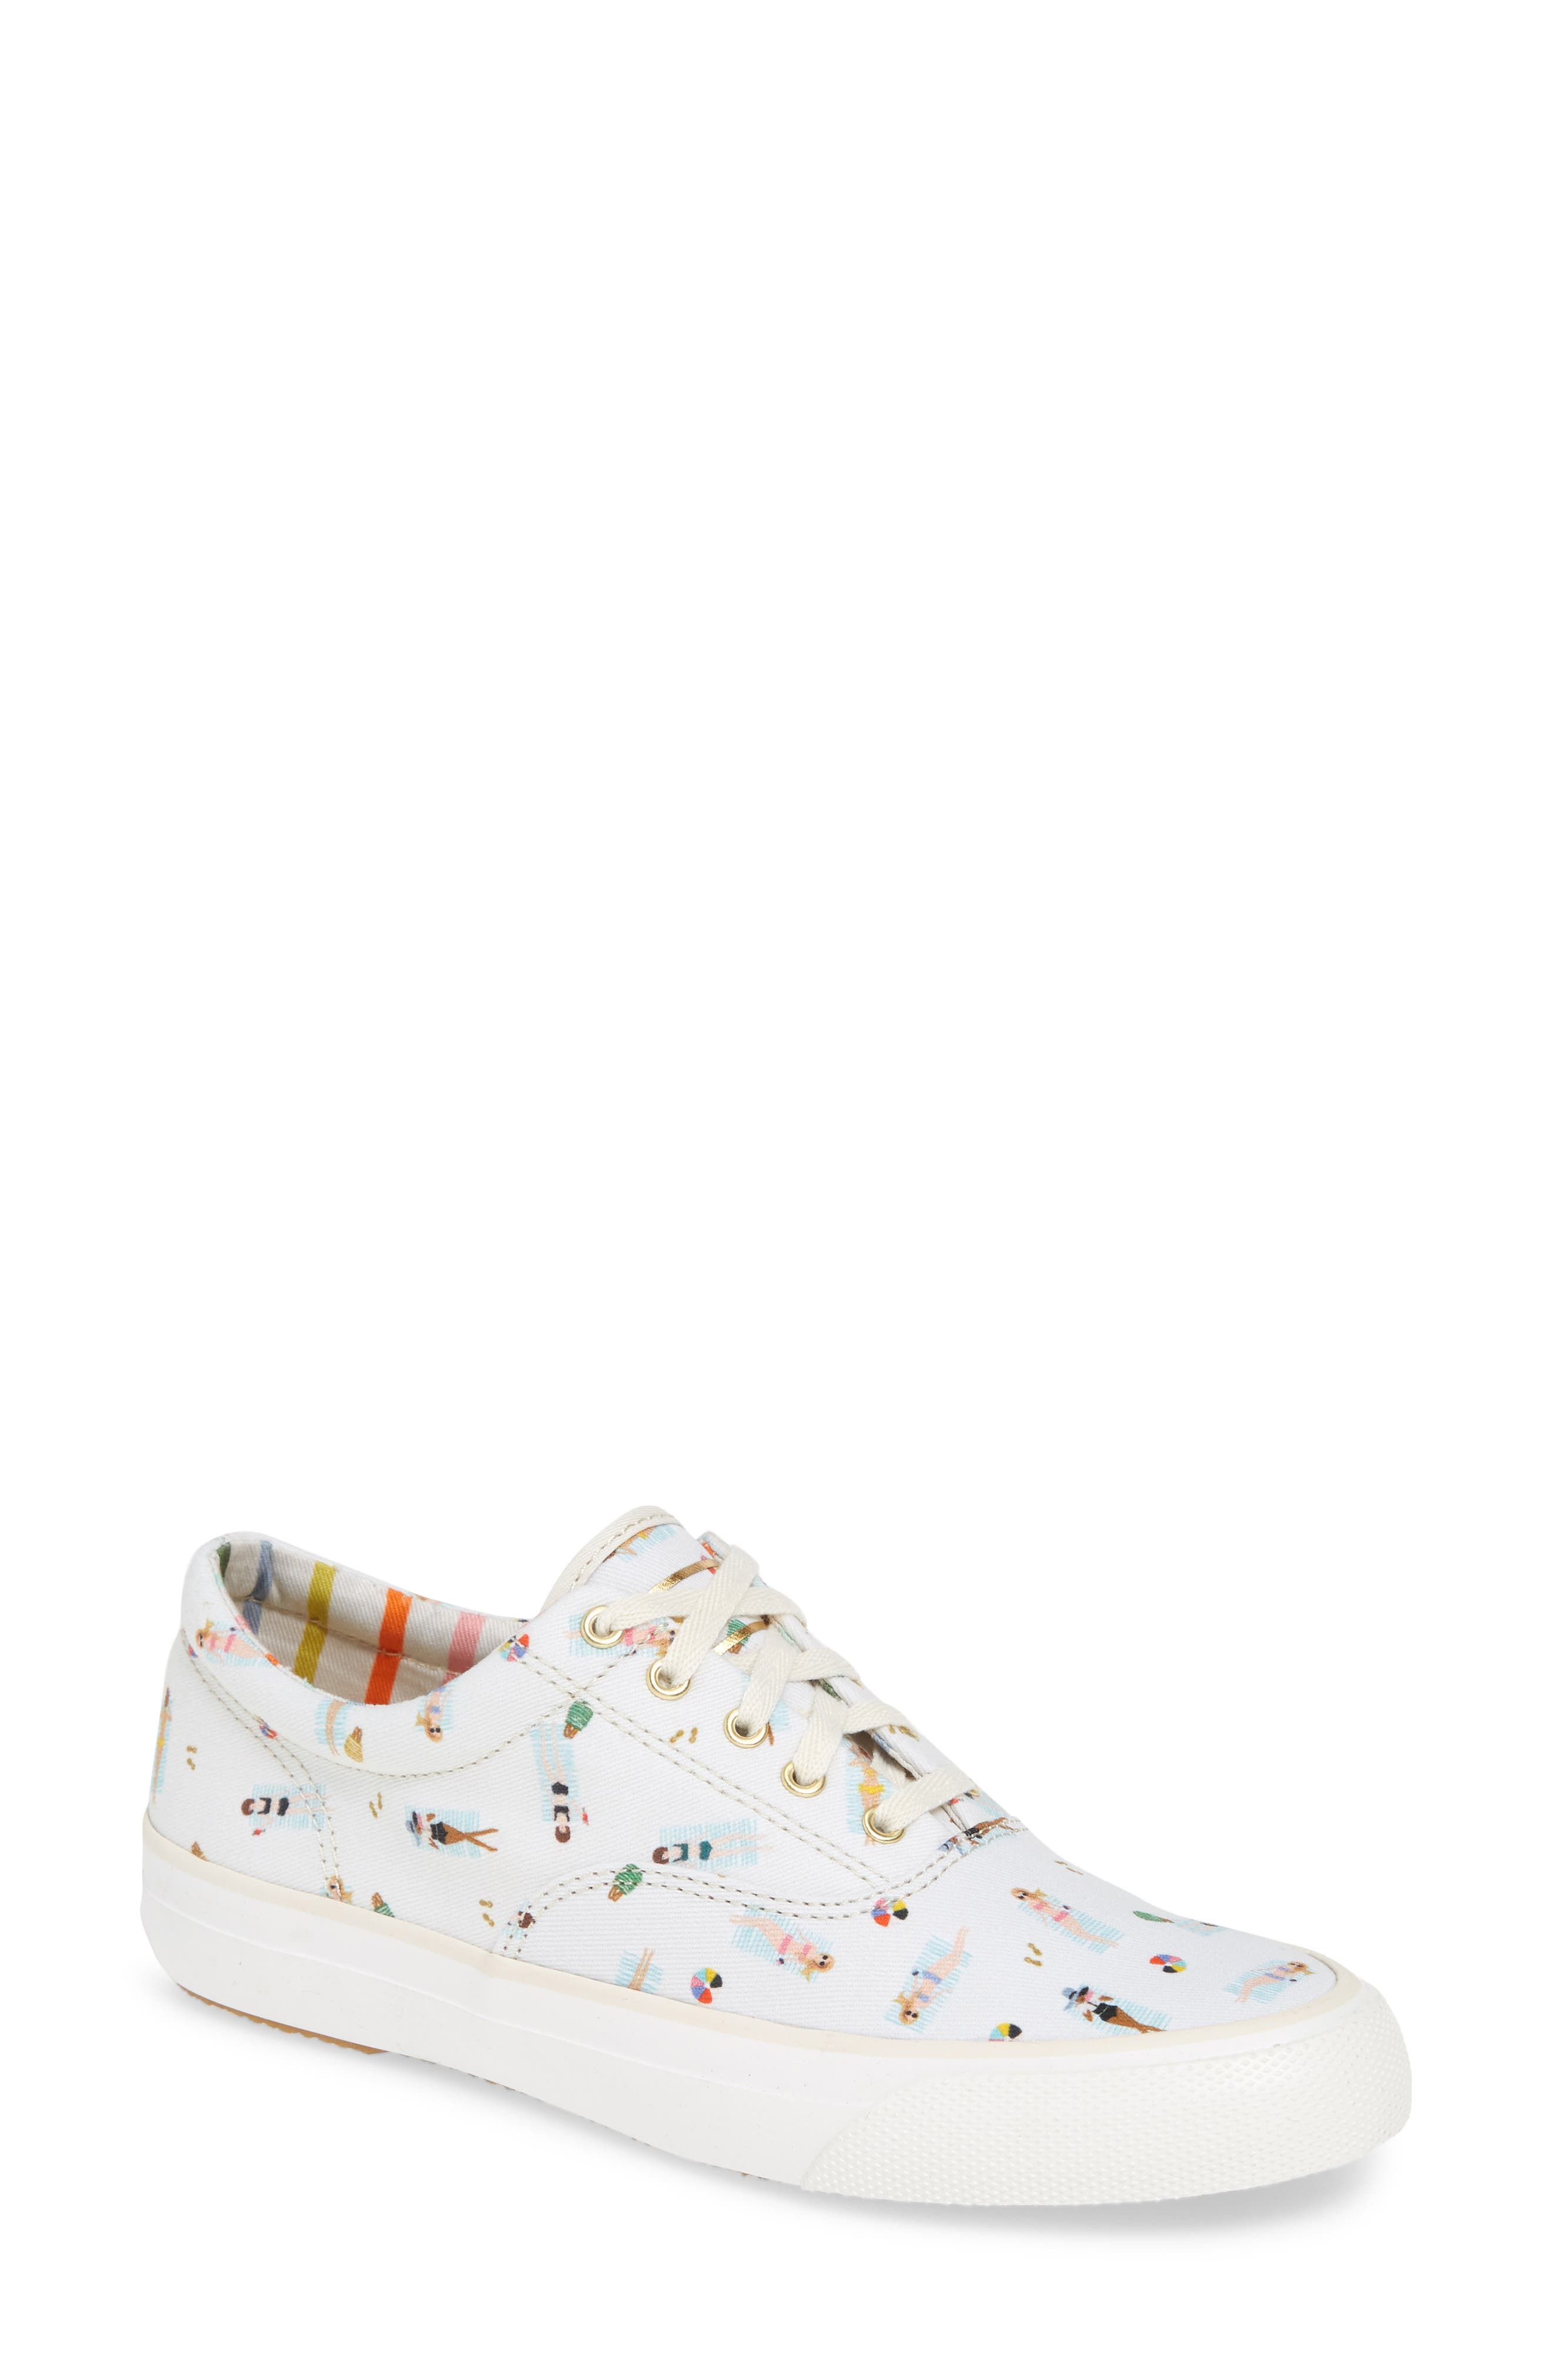 Keds X Rifle Paper Co. Sungirl Anchor Sneaker- White